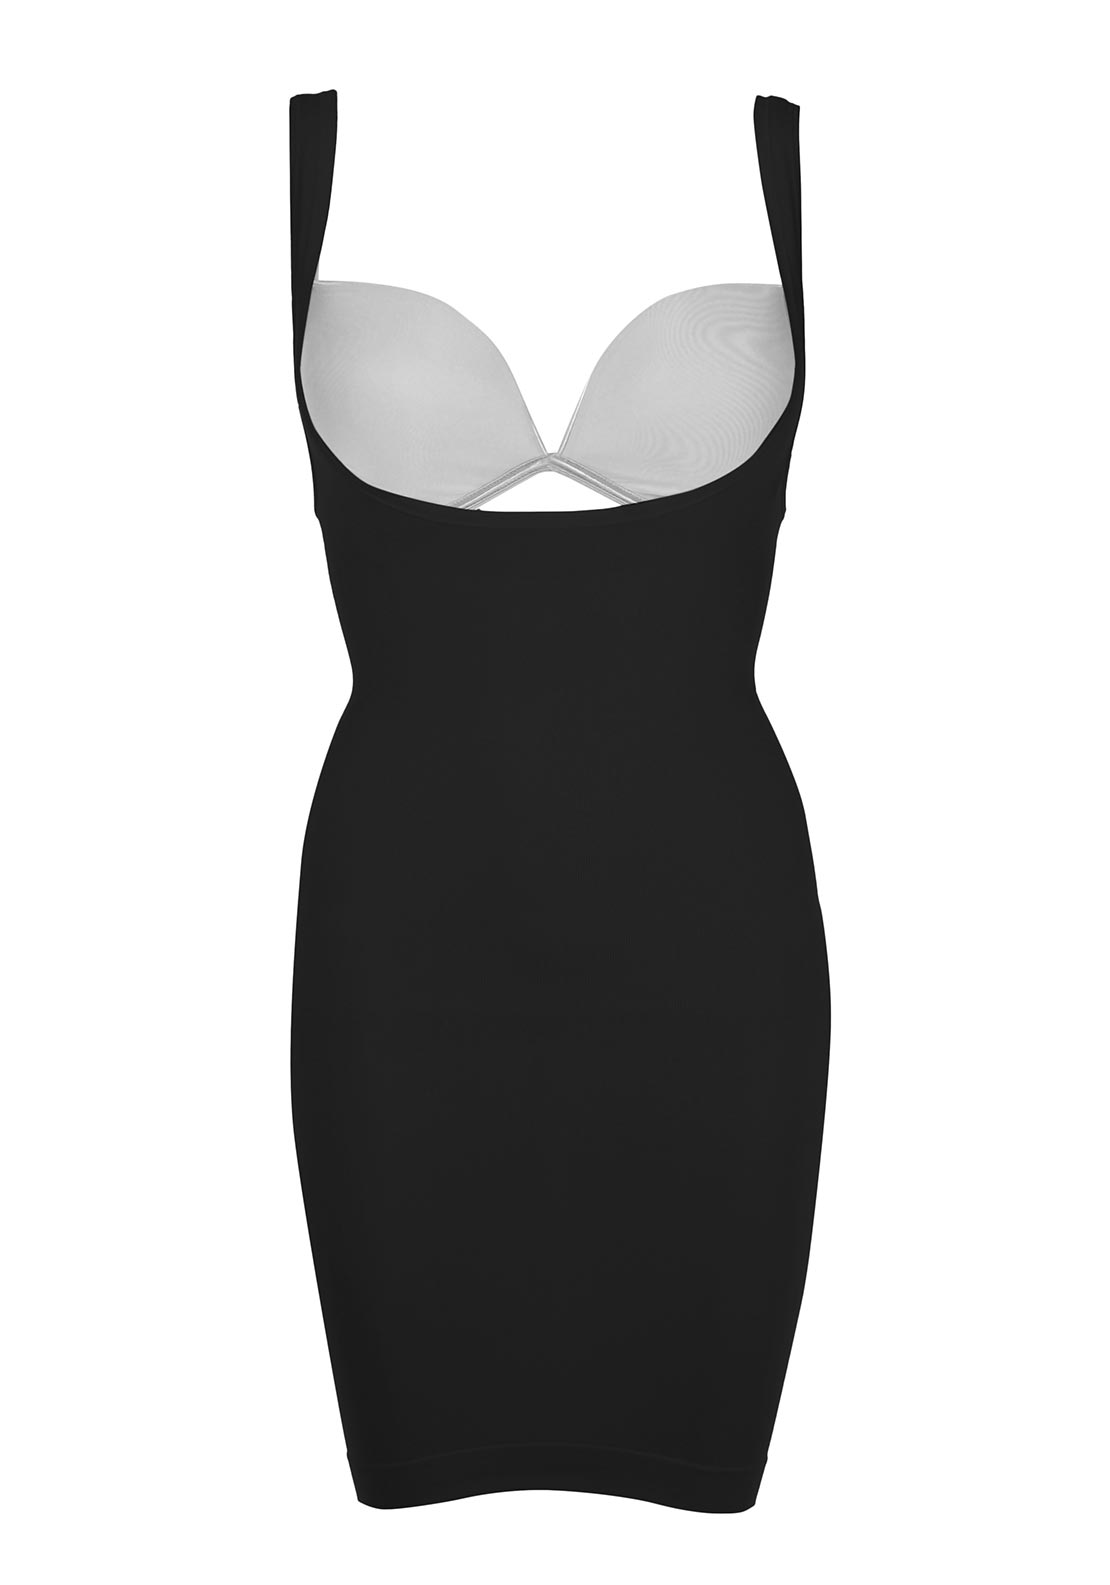 Bodyfit Under Bust Control Dress, Black